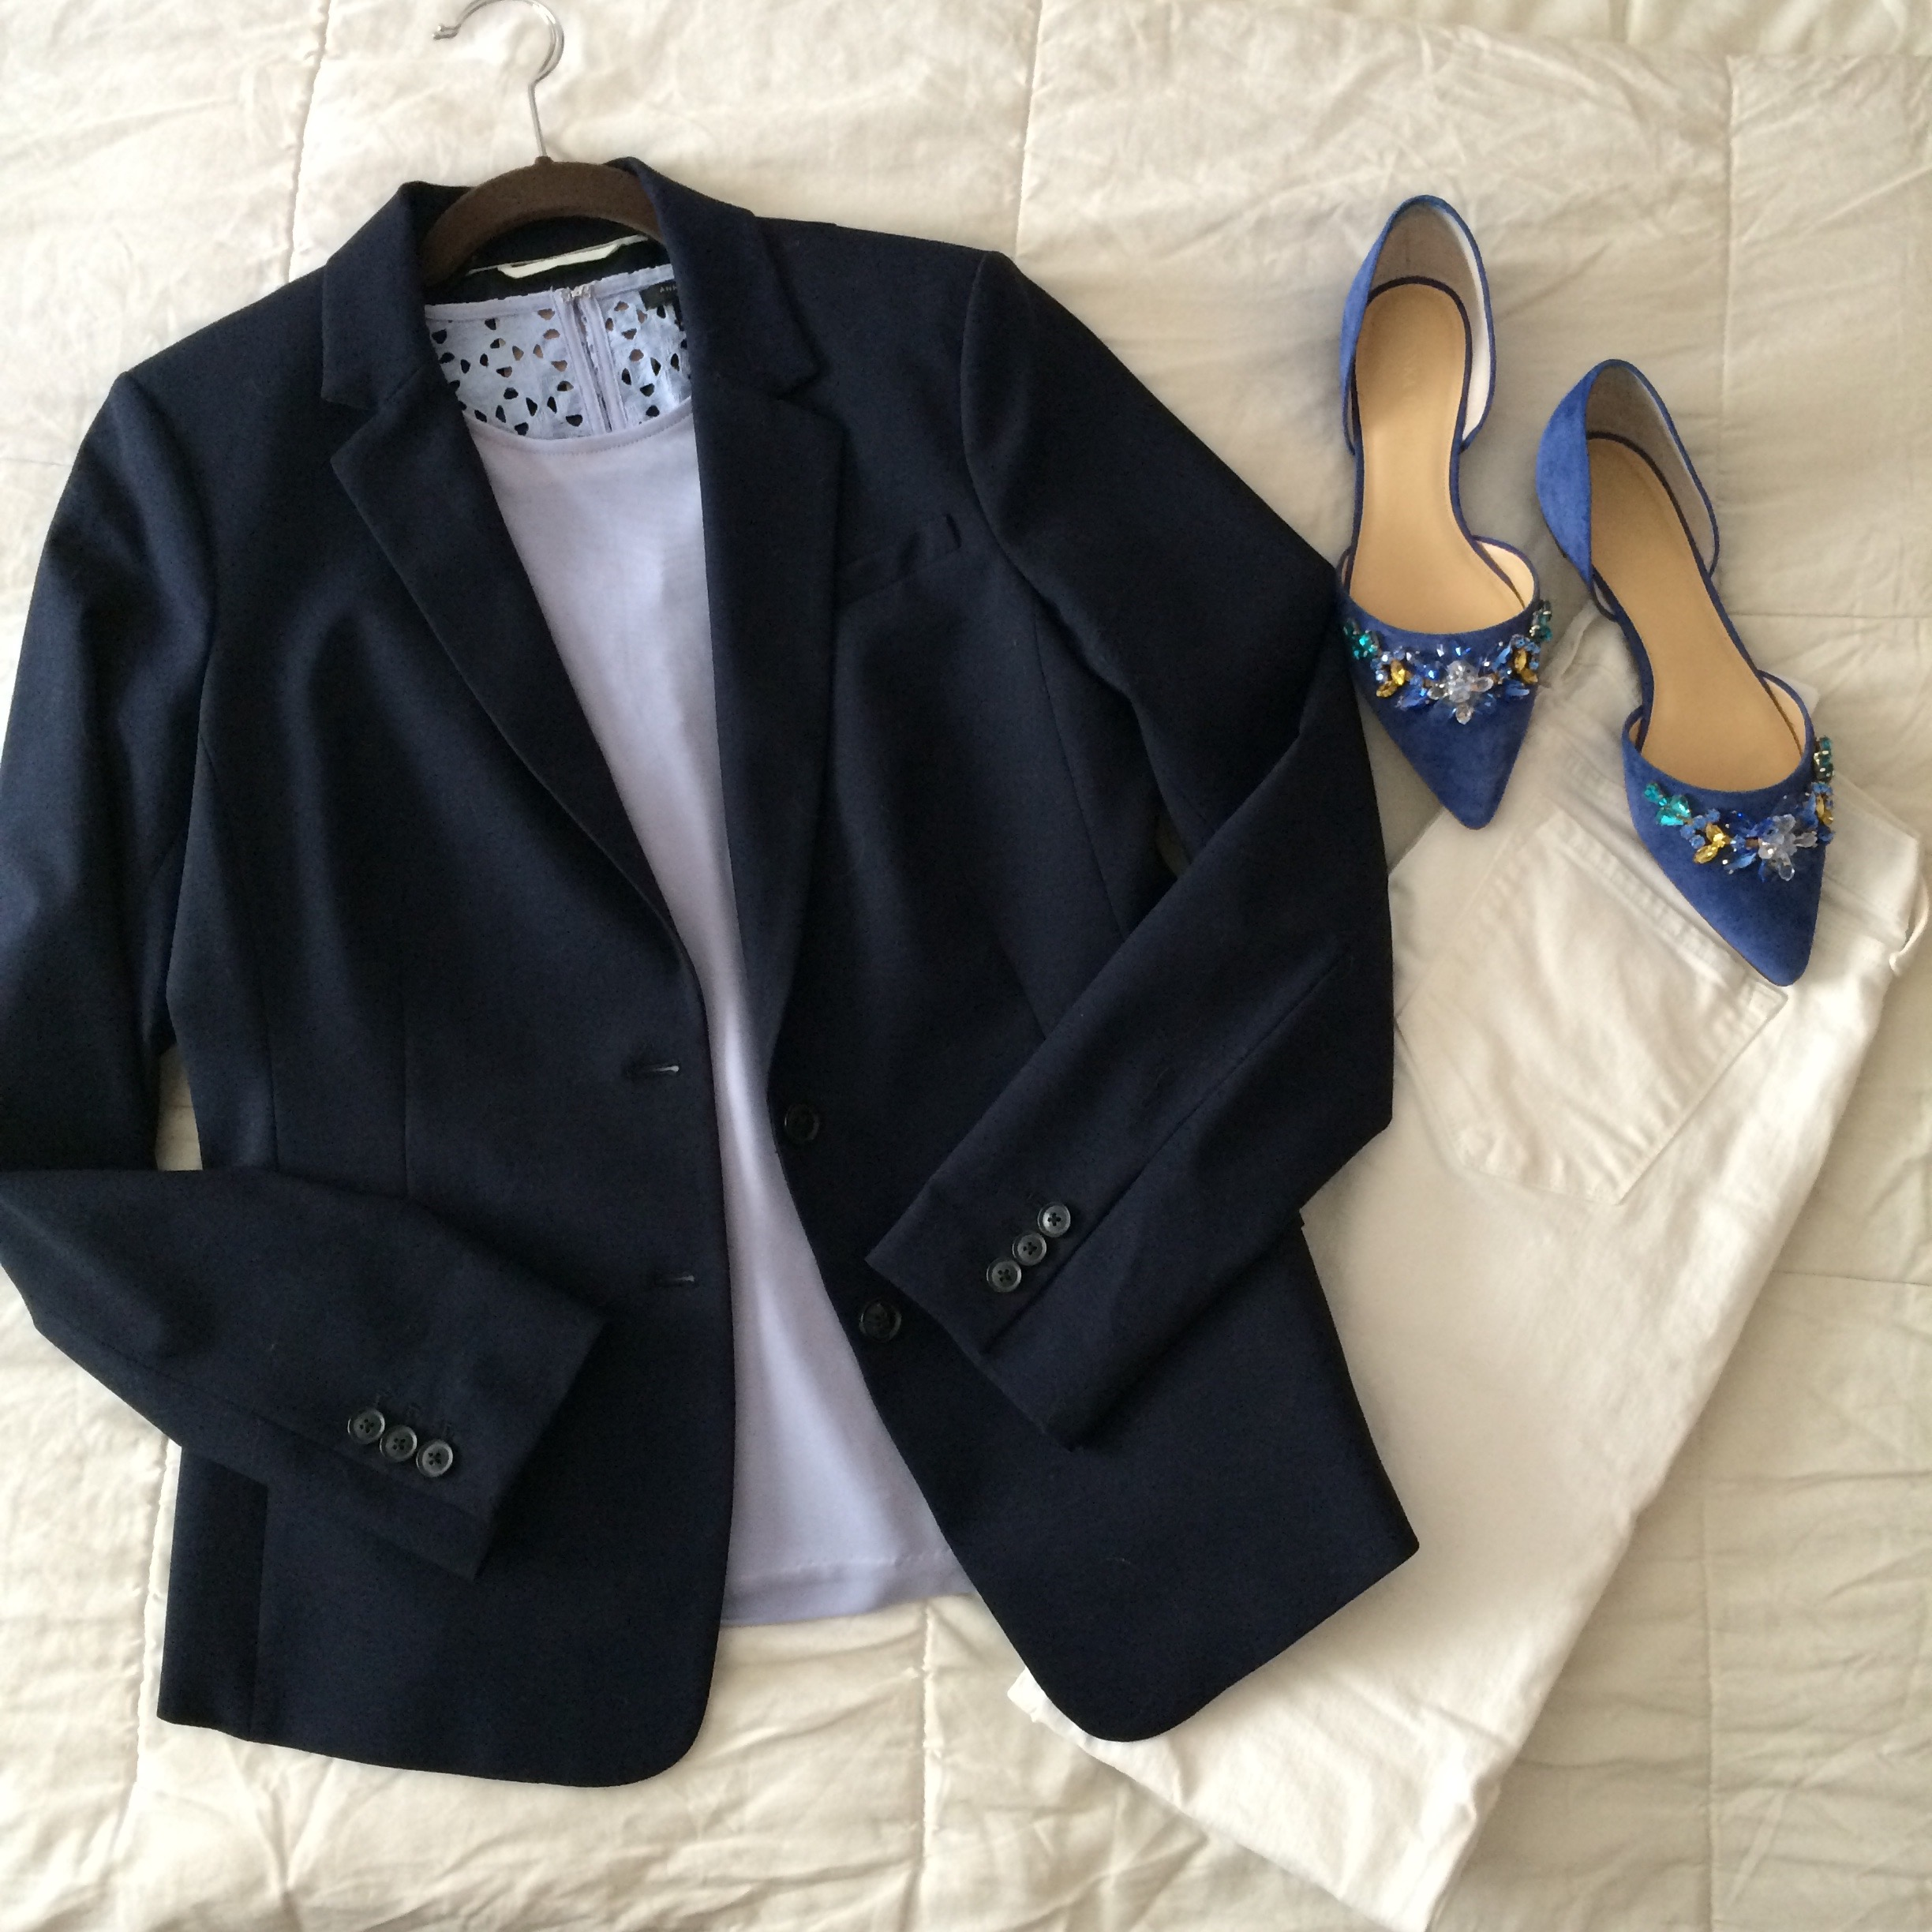 beaded flats and navy blazer.jpg